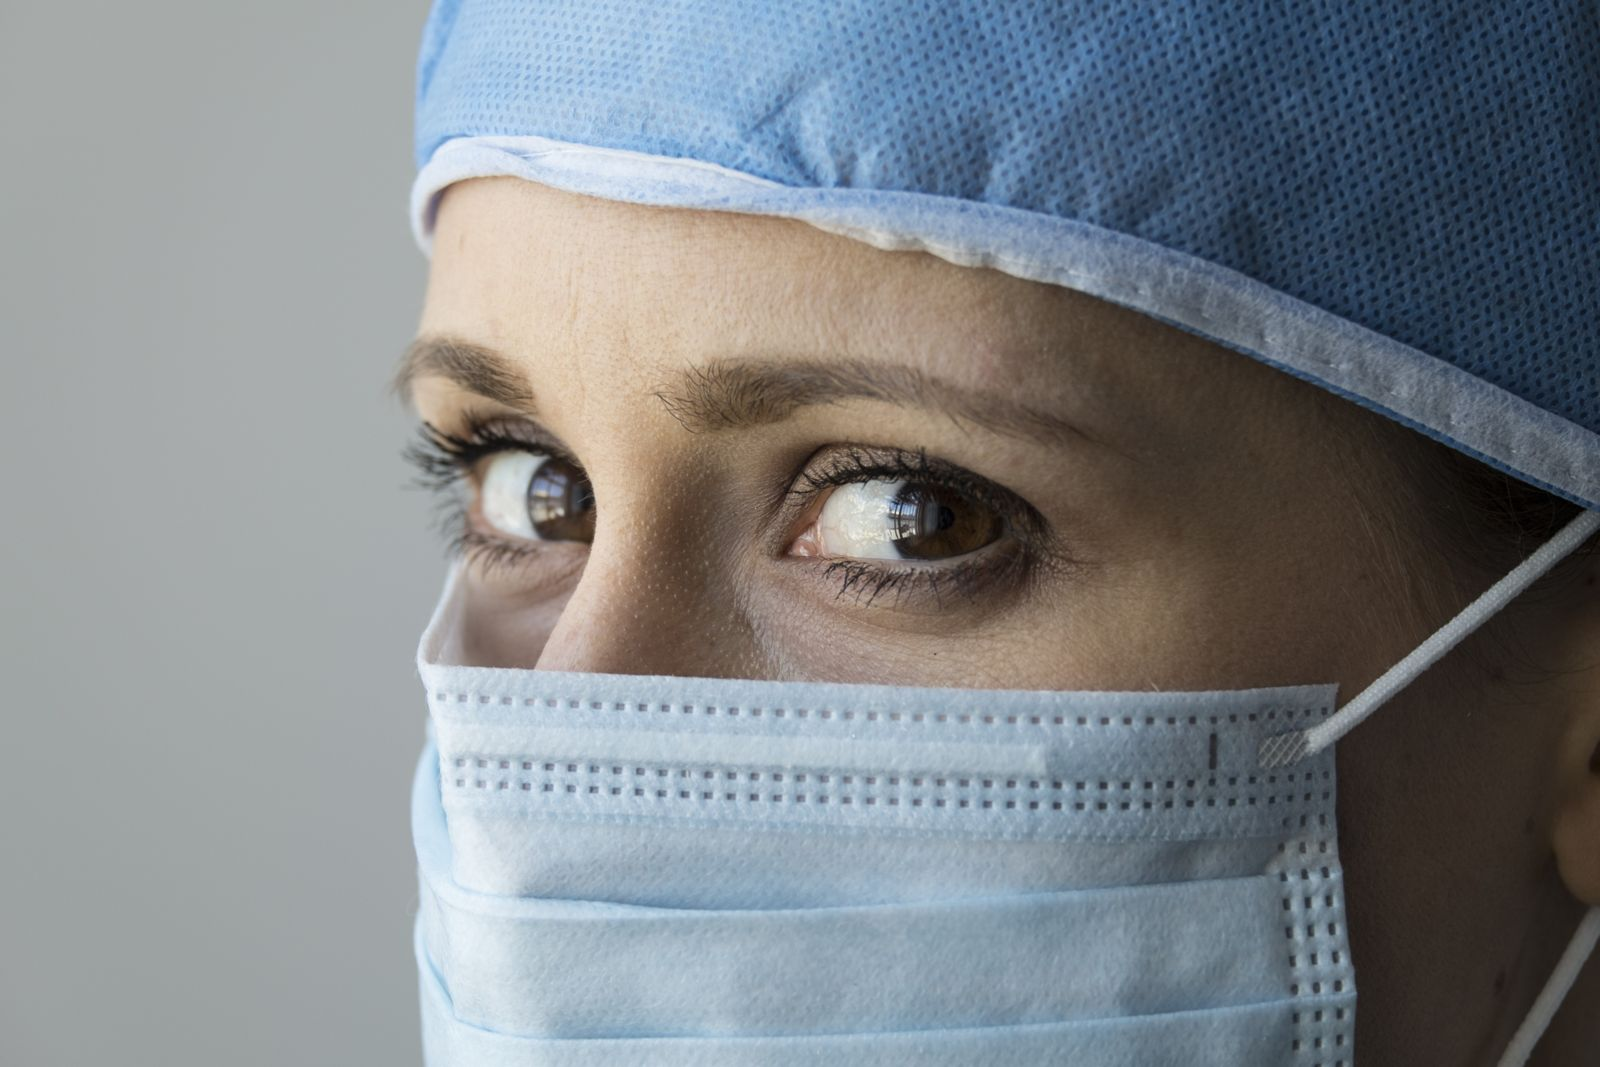 female surgeon with mask and cap